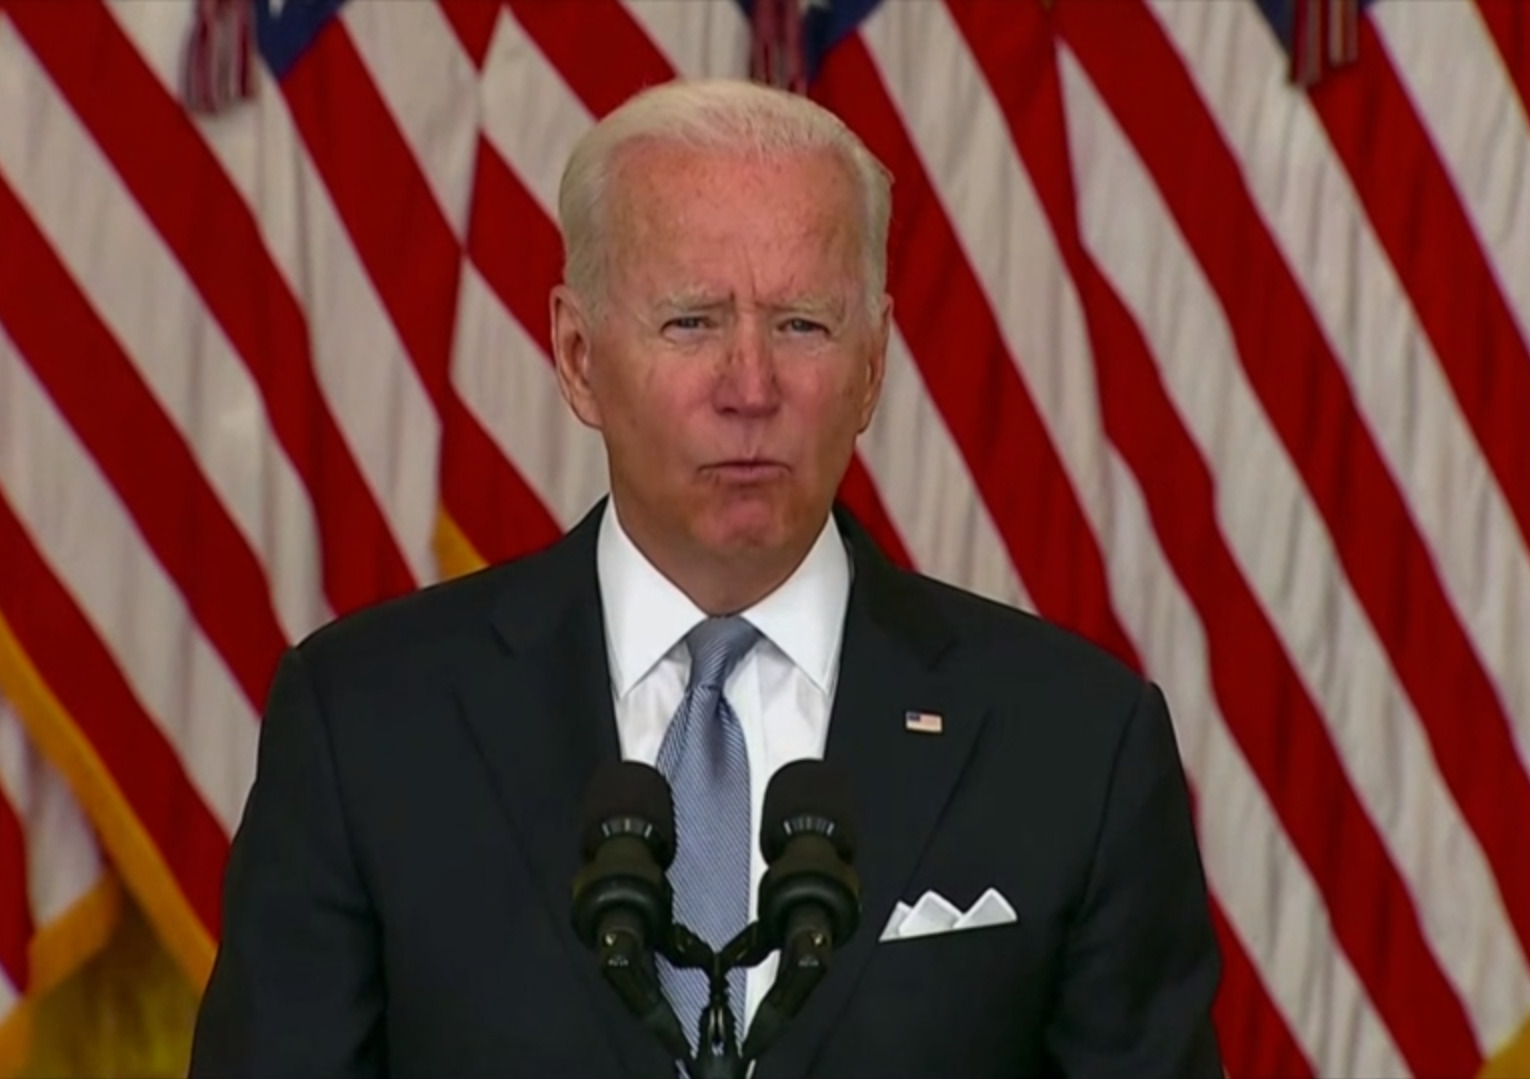 Buck Stops With Me: Joe Biden Finally Commented On Situation In Afghanistan